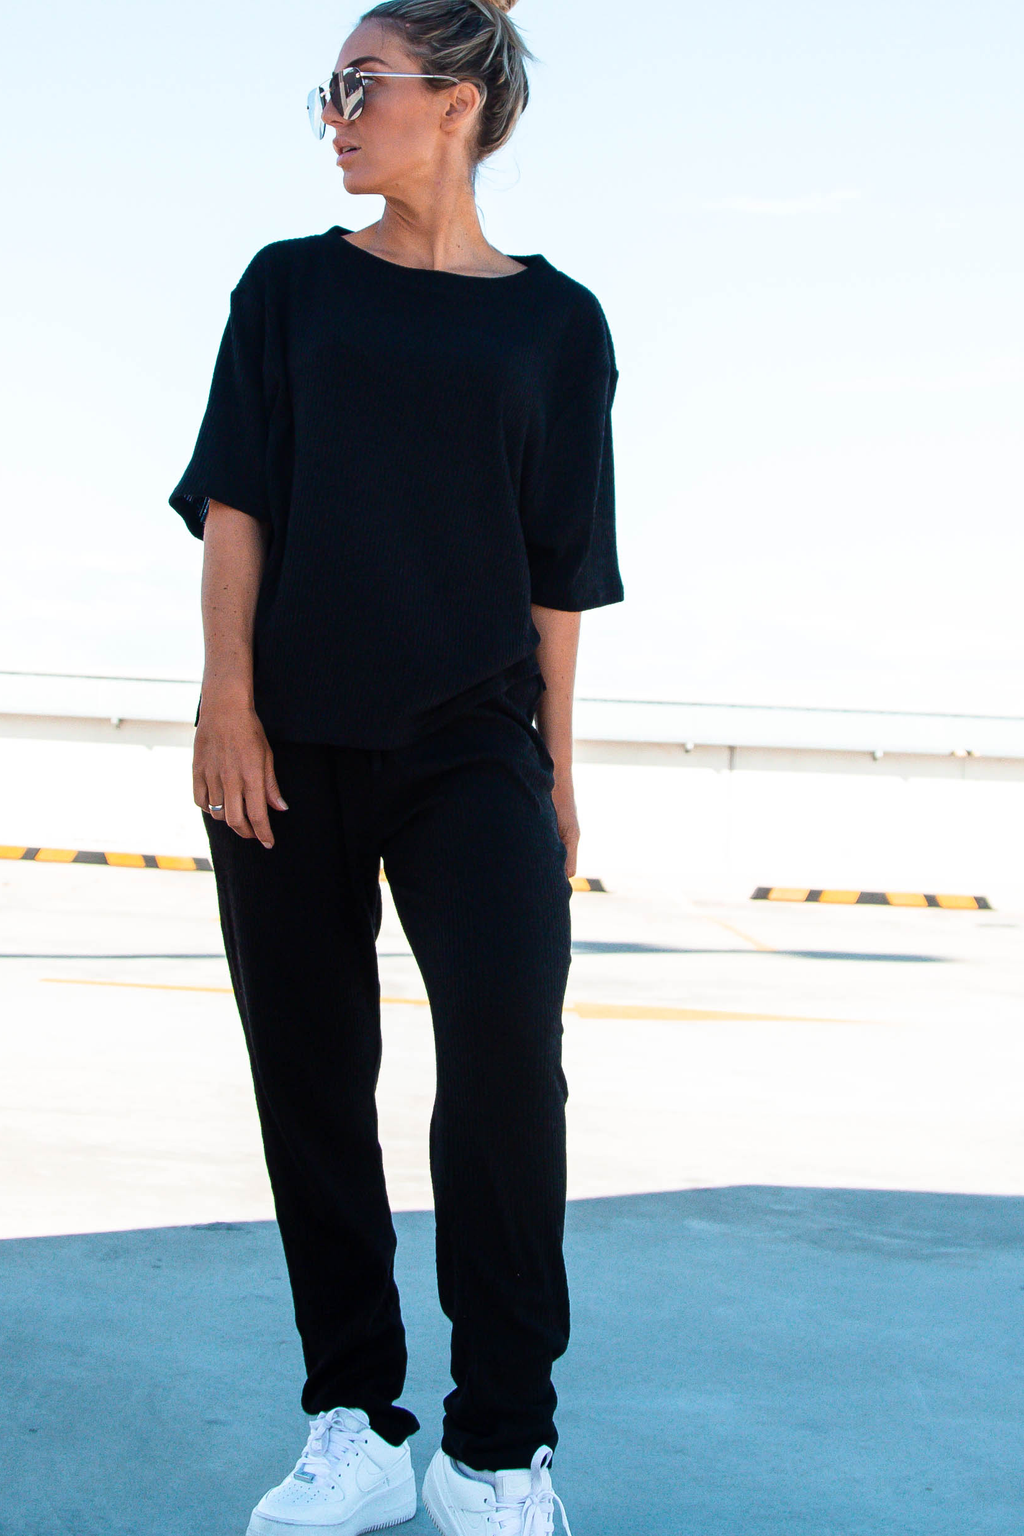 LOUNGE Ribbed Pants  (N.Y.C Black)